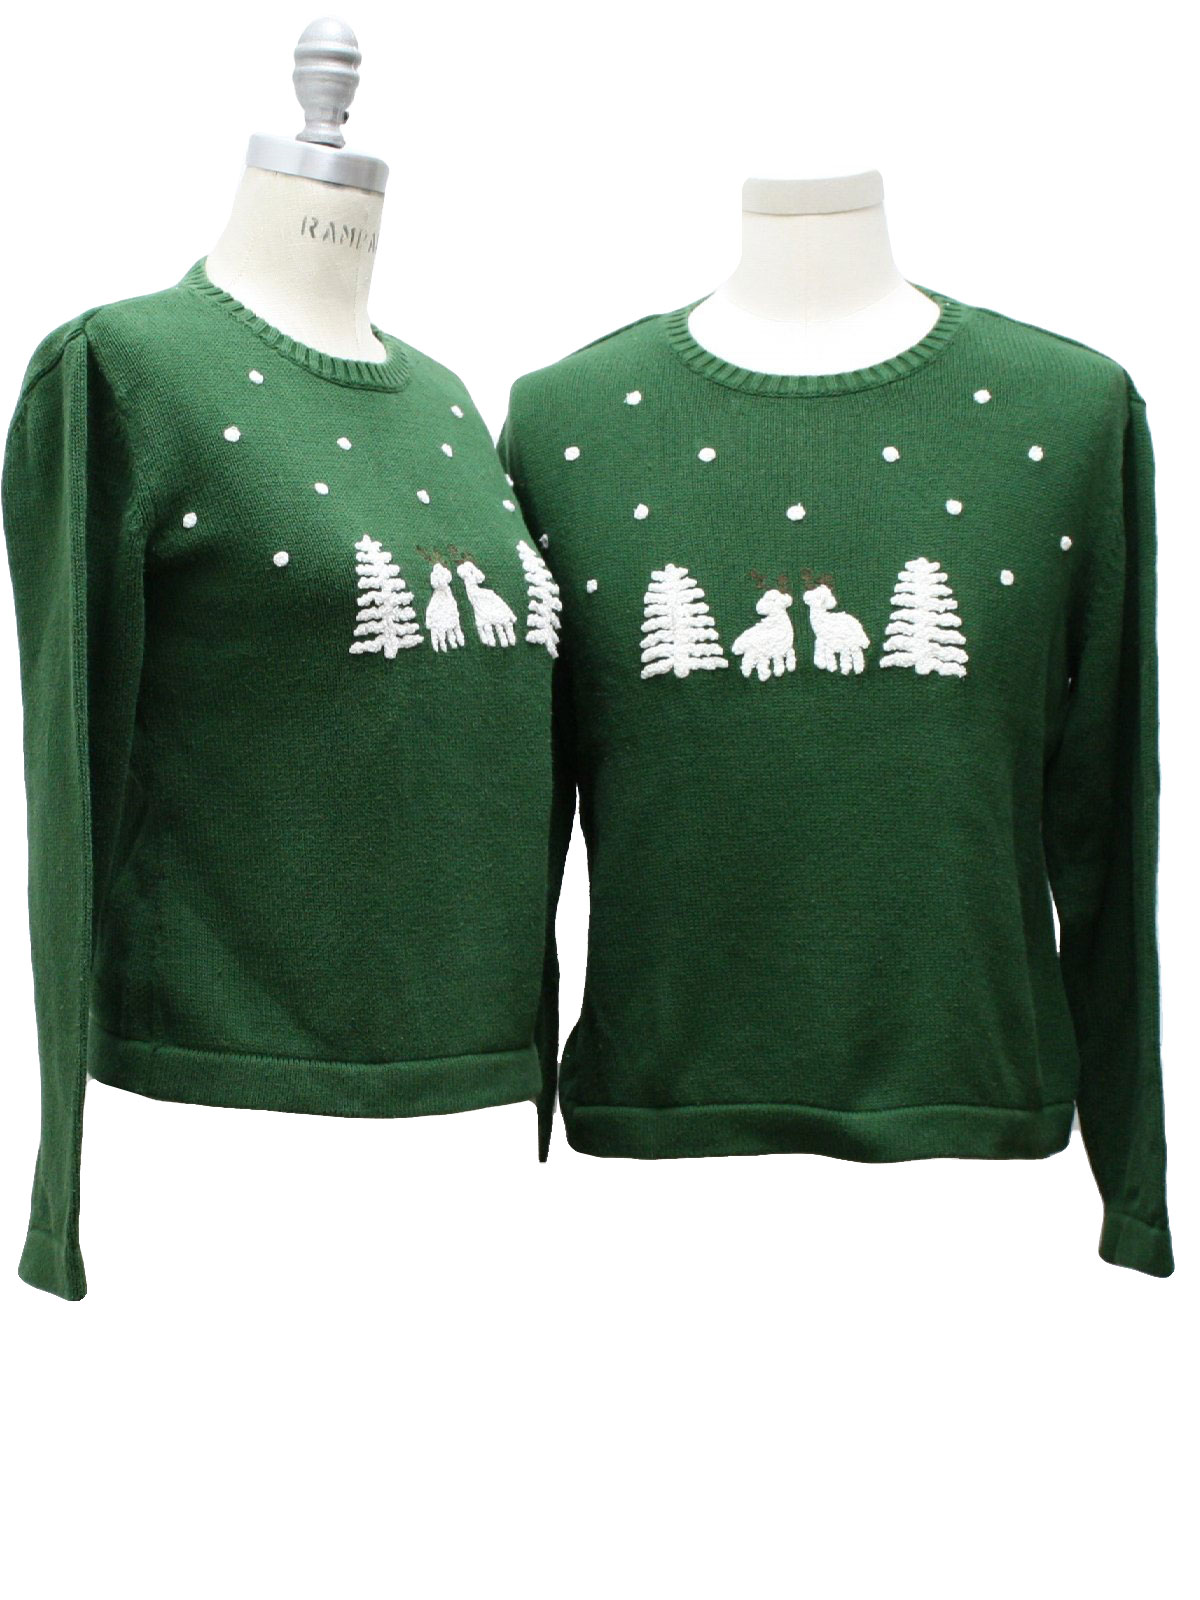 Couples Christmas Sweaters.Liz Claiborne Matching Pair Of Womens Ugly Christmas Sweaters